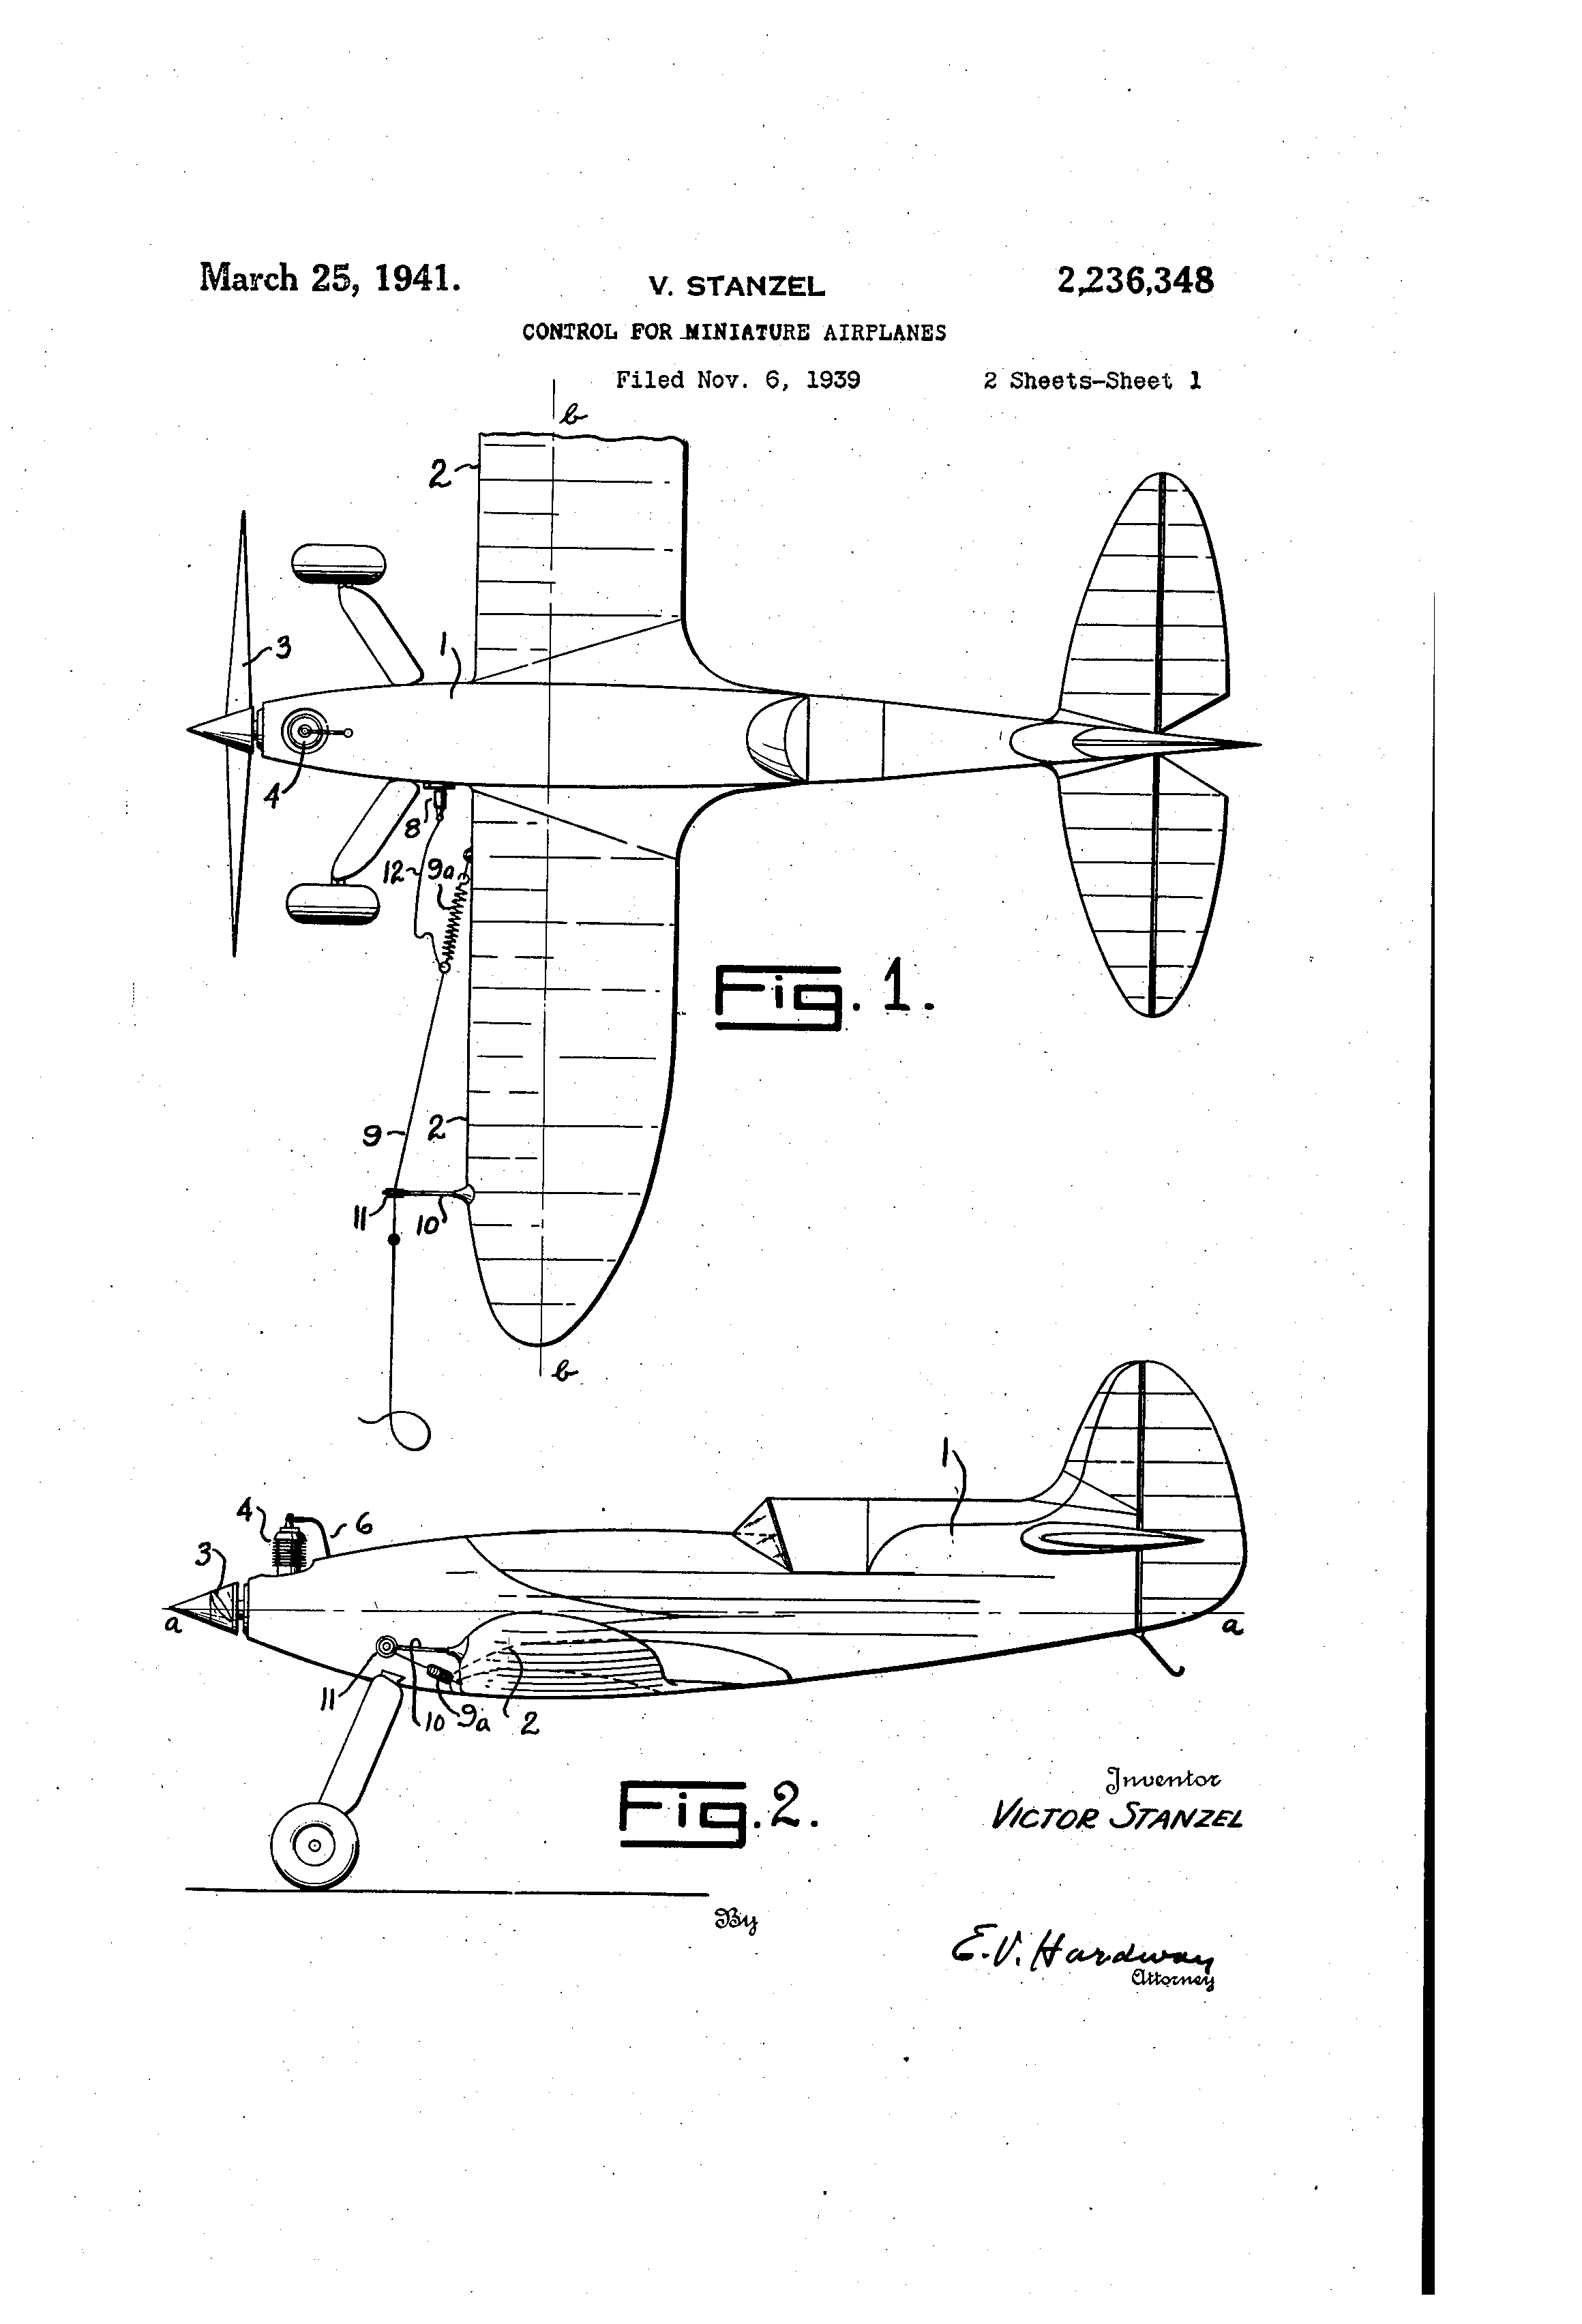 Victor Stanzel patent for the Shark model airplane